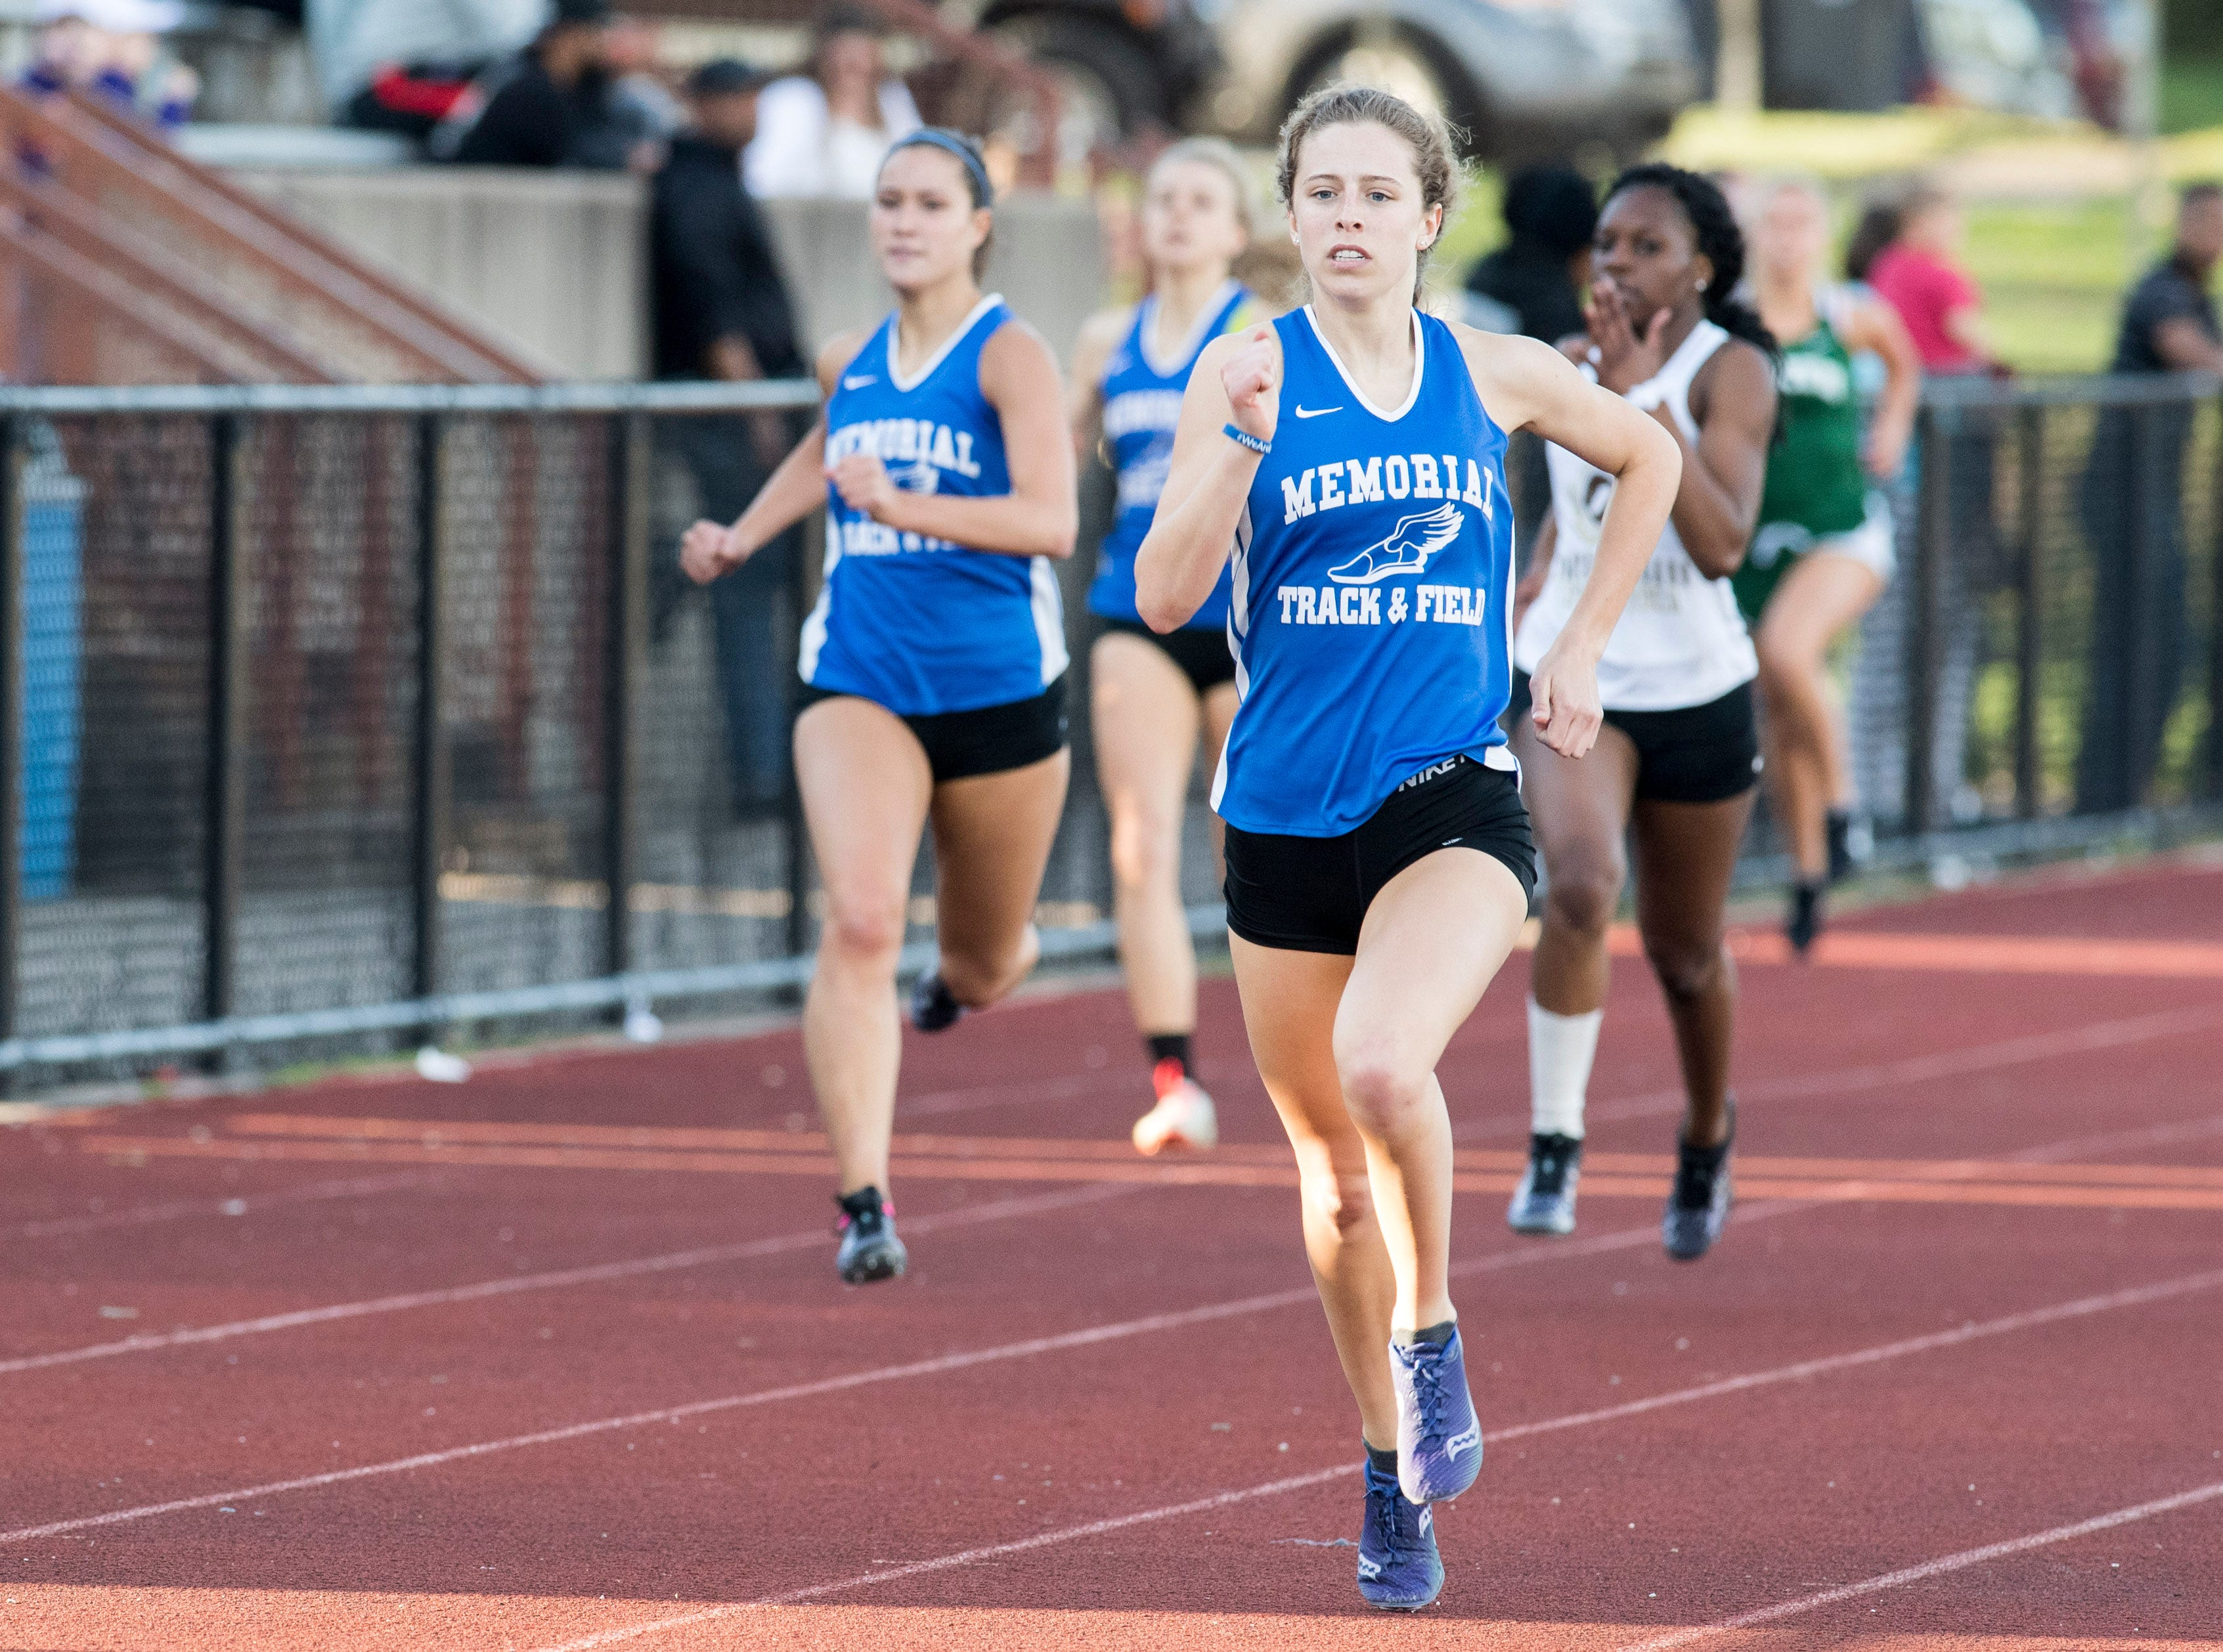 Memorial's Ellen Hayhusrt leads in the 400m relay event during the 2019 City Track and Field meet at Central High School Friday, April 12, 2019.